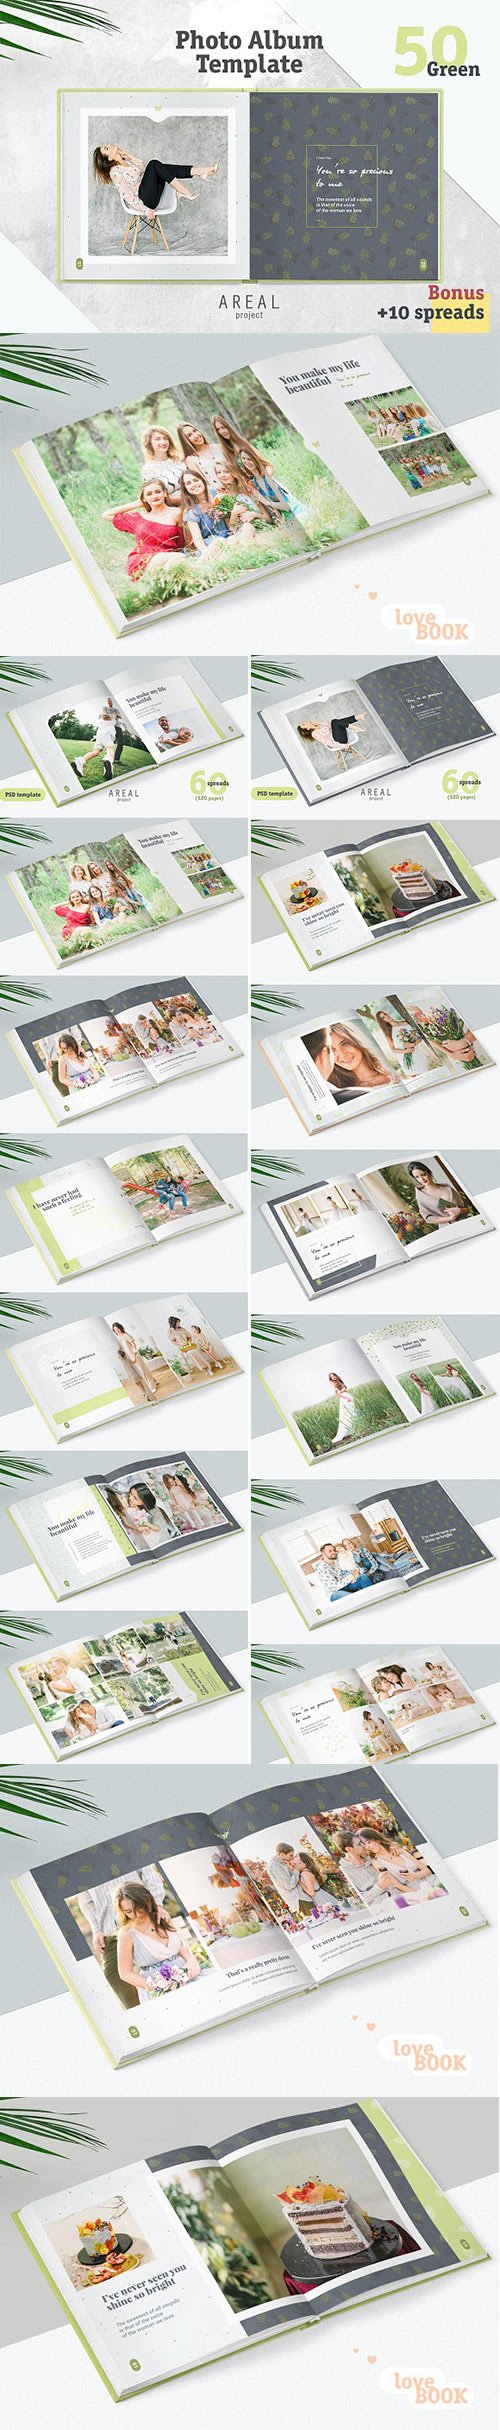 CM - Photo Album Template - Green 1357532